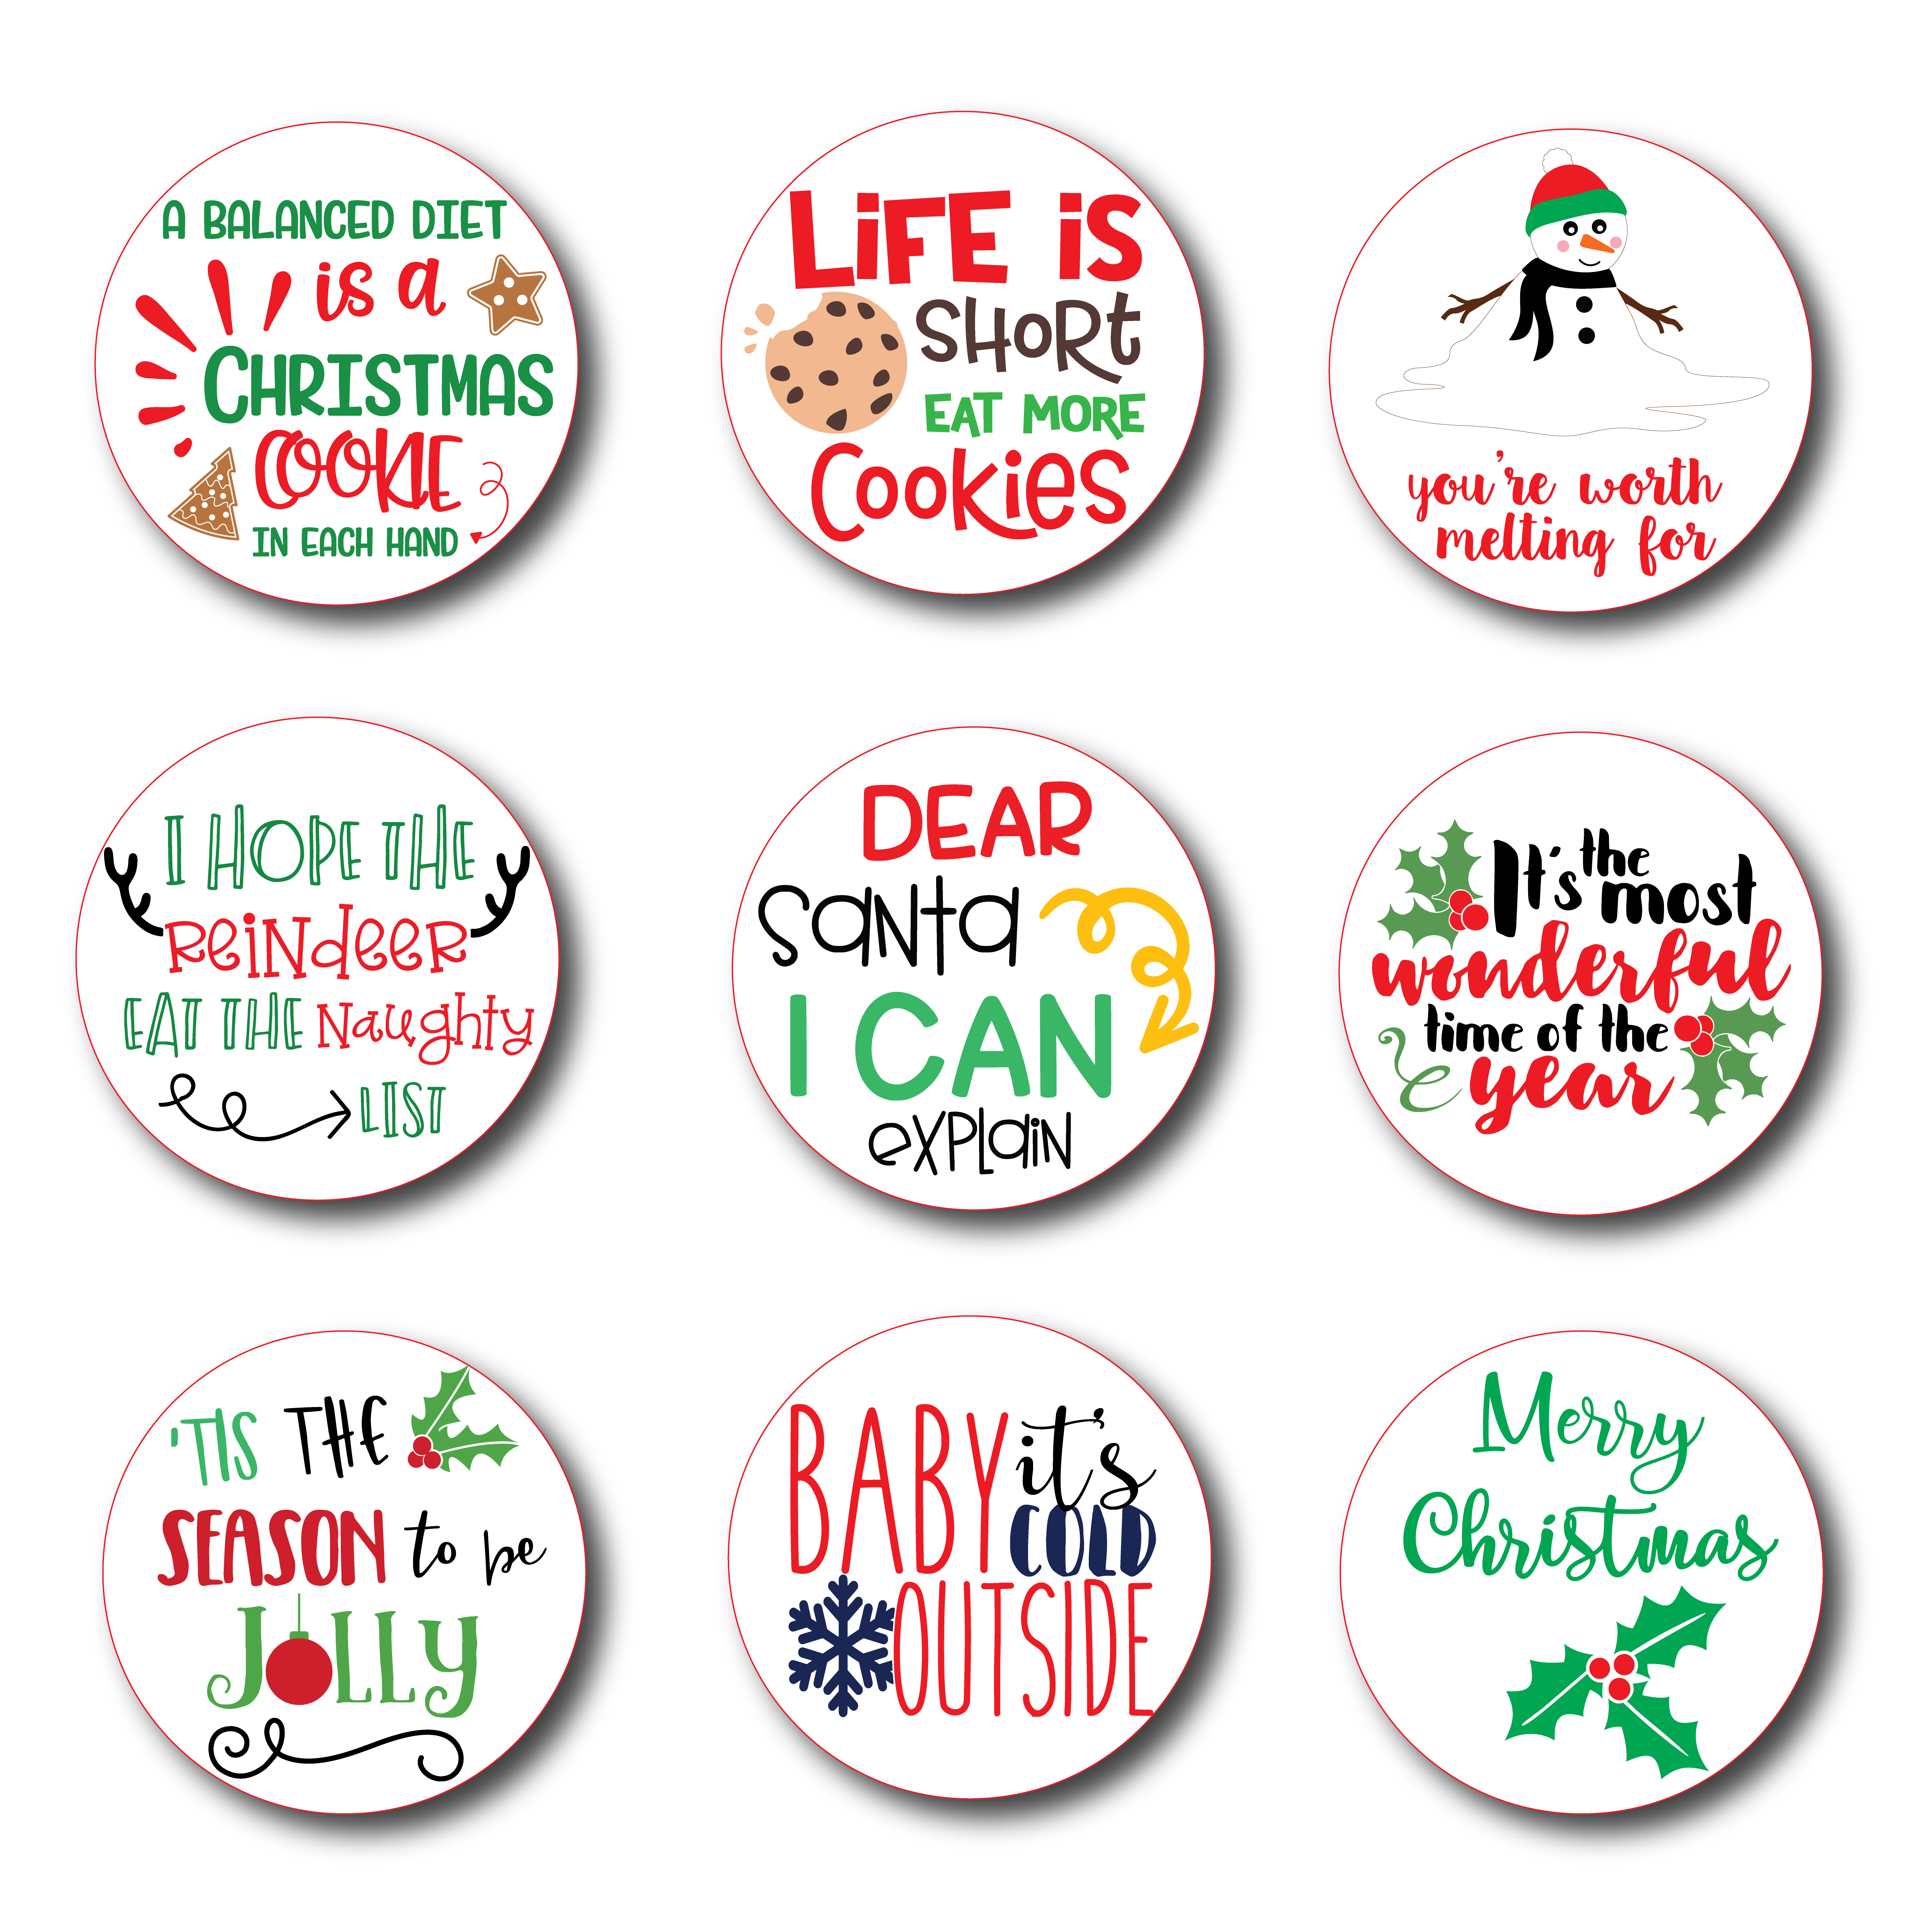 picture about Printable Christmas Stickers called Printable Xmas Stickers Fixed of 9 Options Electronic History